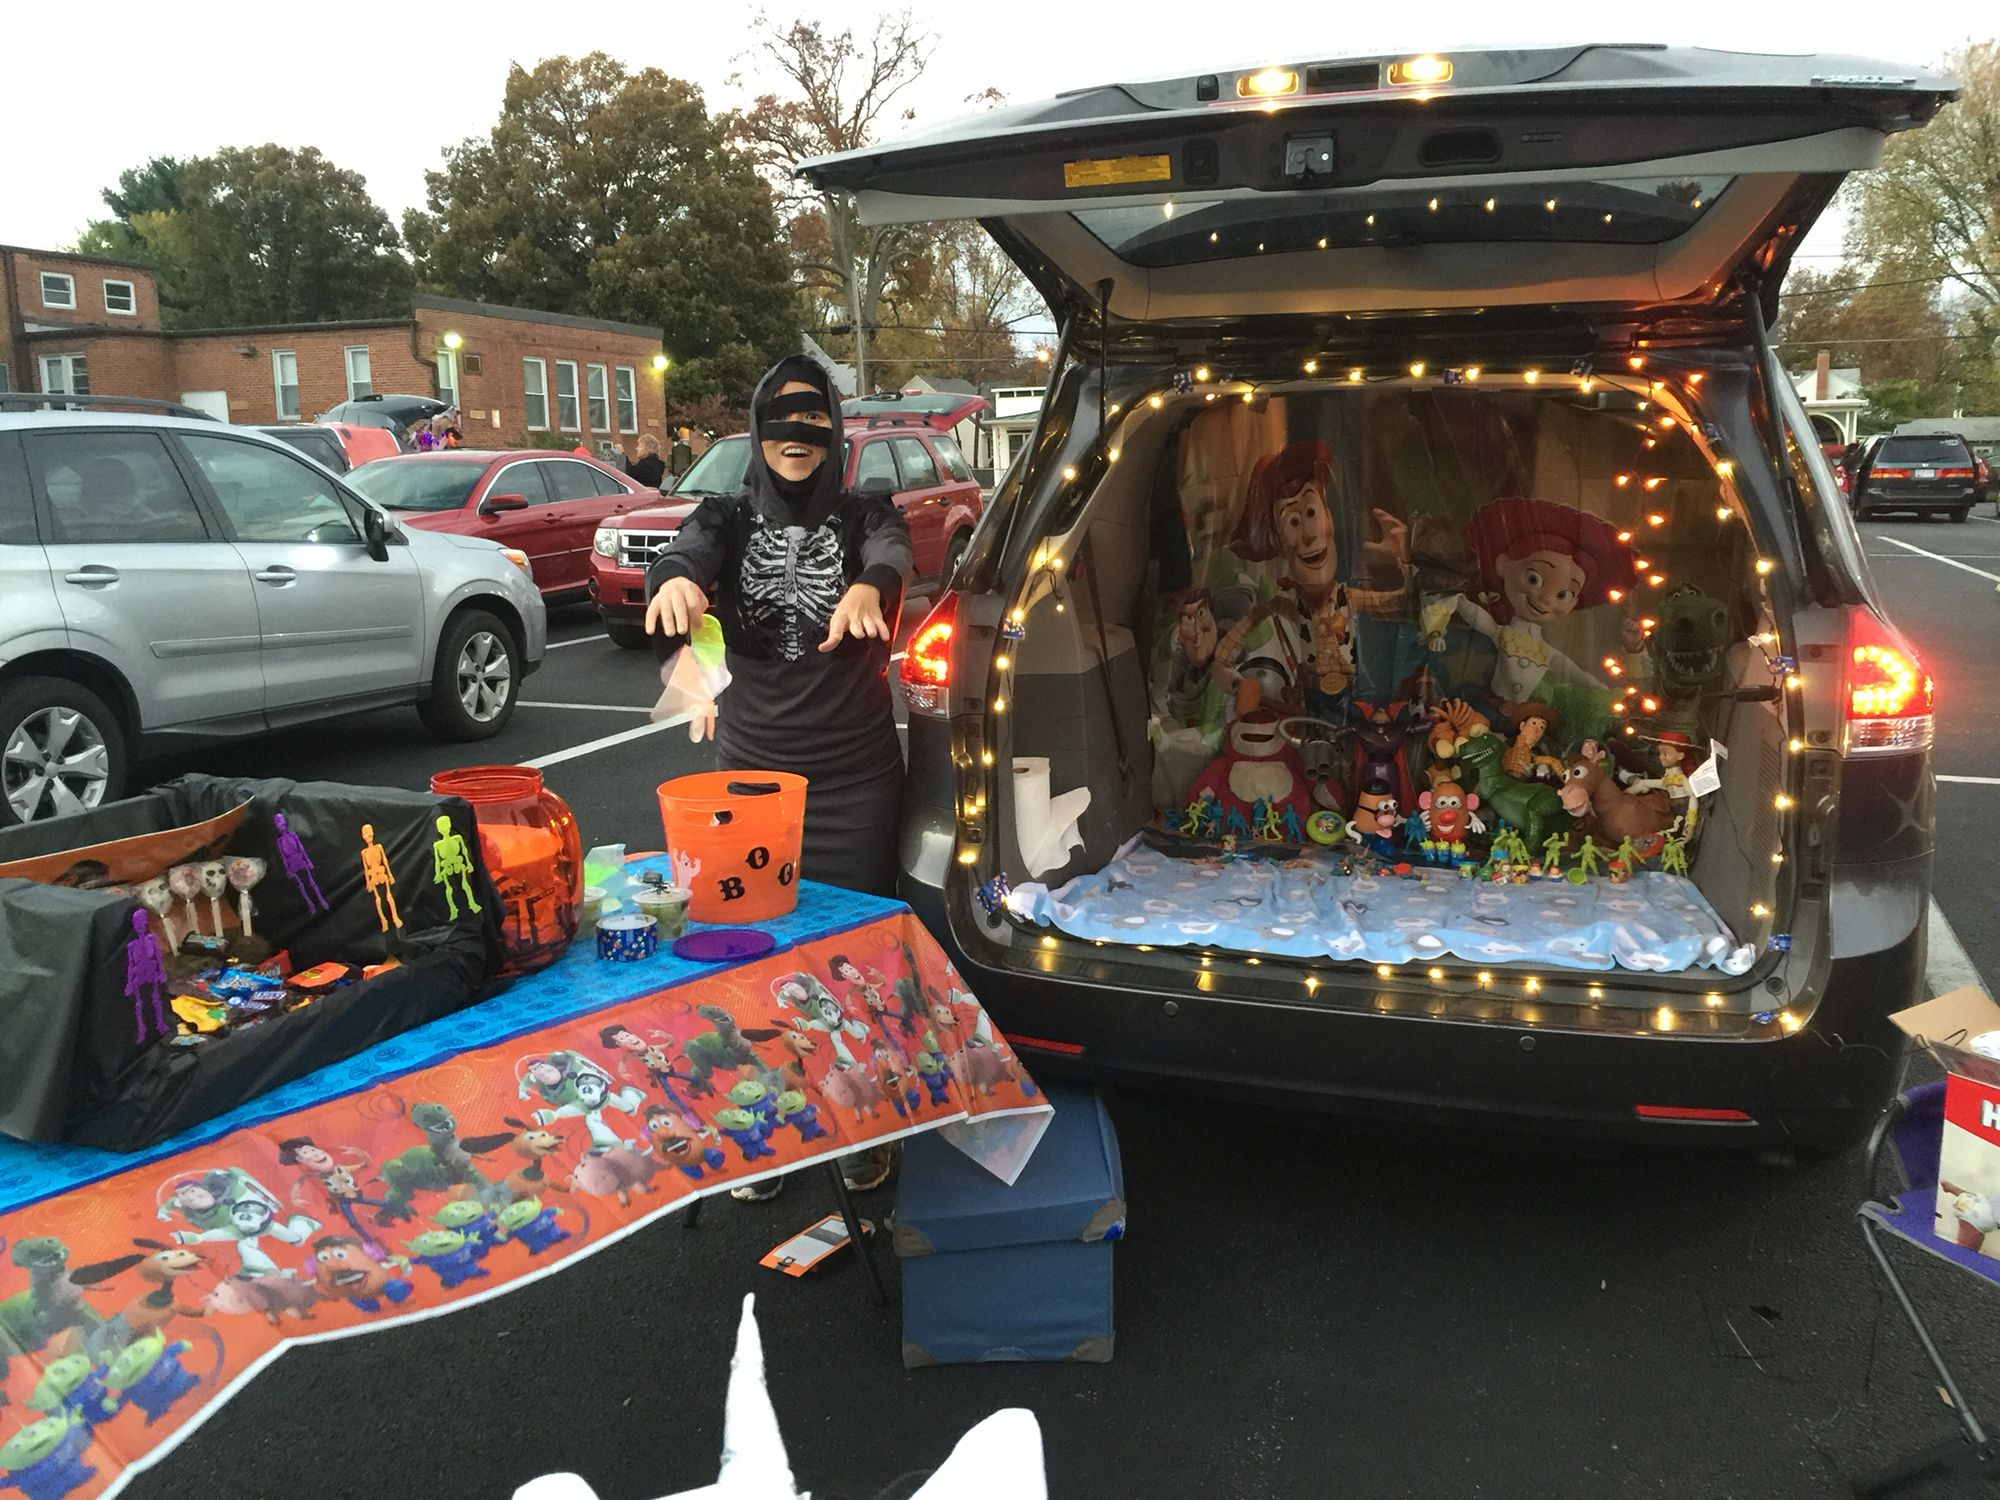 Toy Story Themed Trunk Or Treat Truck Or Treat Trunk Or Treat Halloween Party Kids